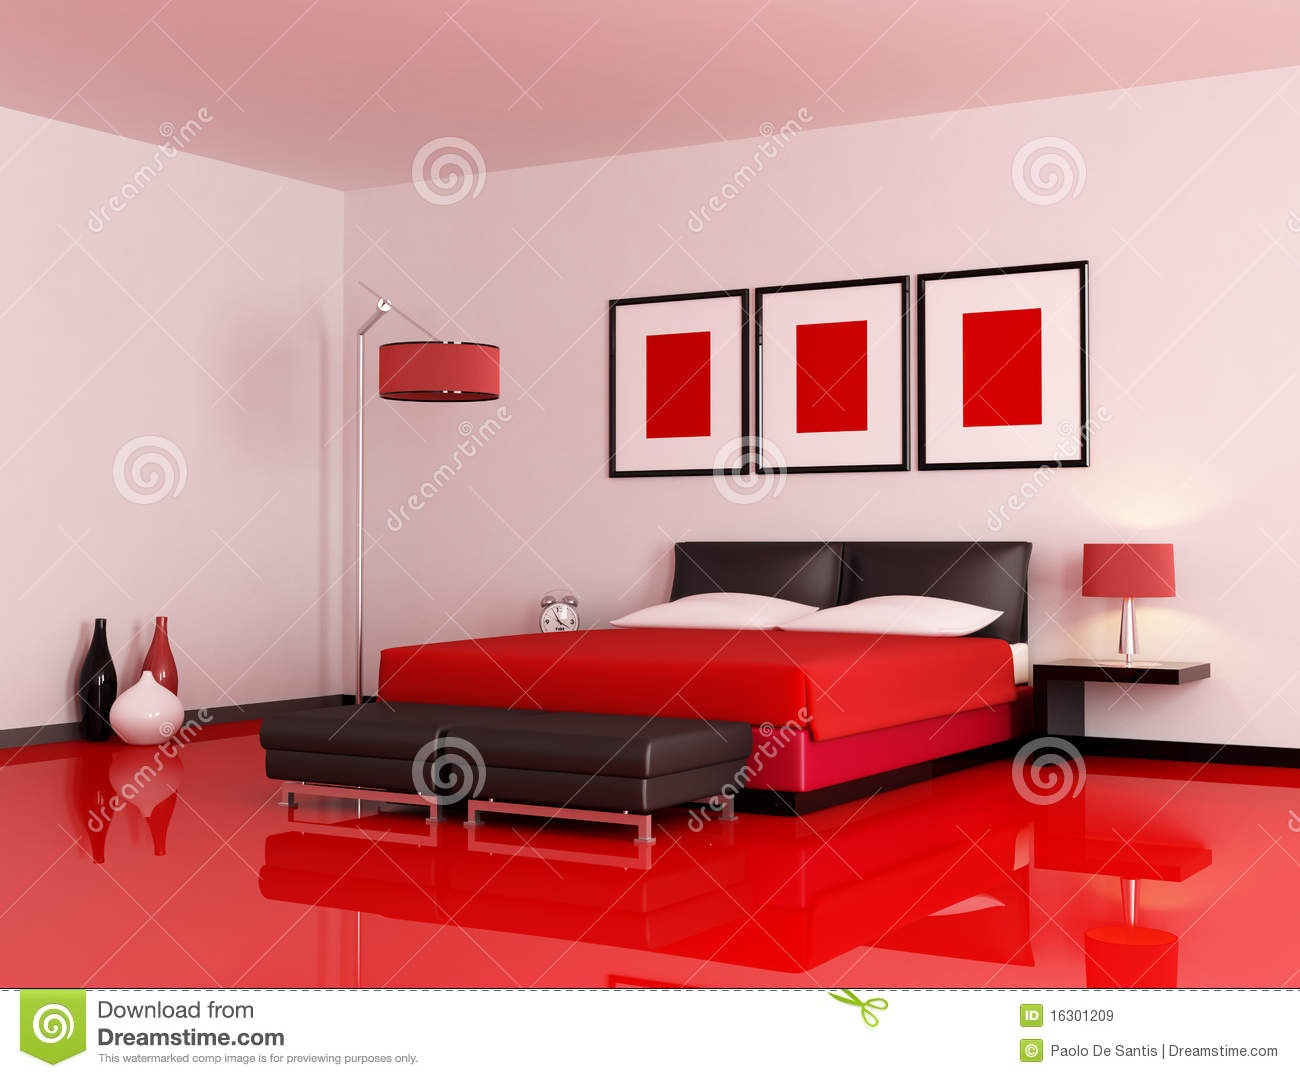 chambre coucher rouge et noire moderne images libres de droits image 16301209. Black Bedroom Furniture Sets. Home Design Ideas